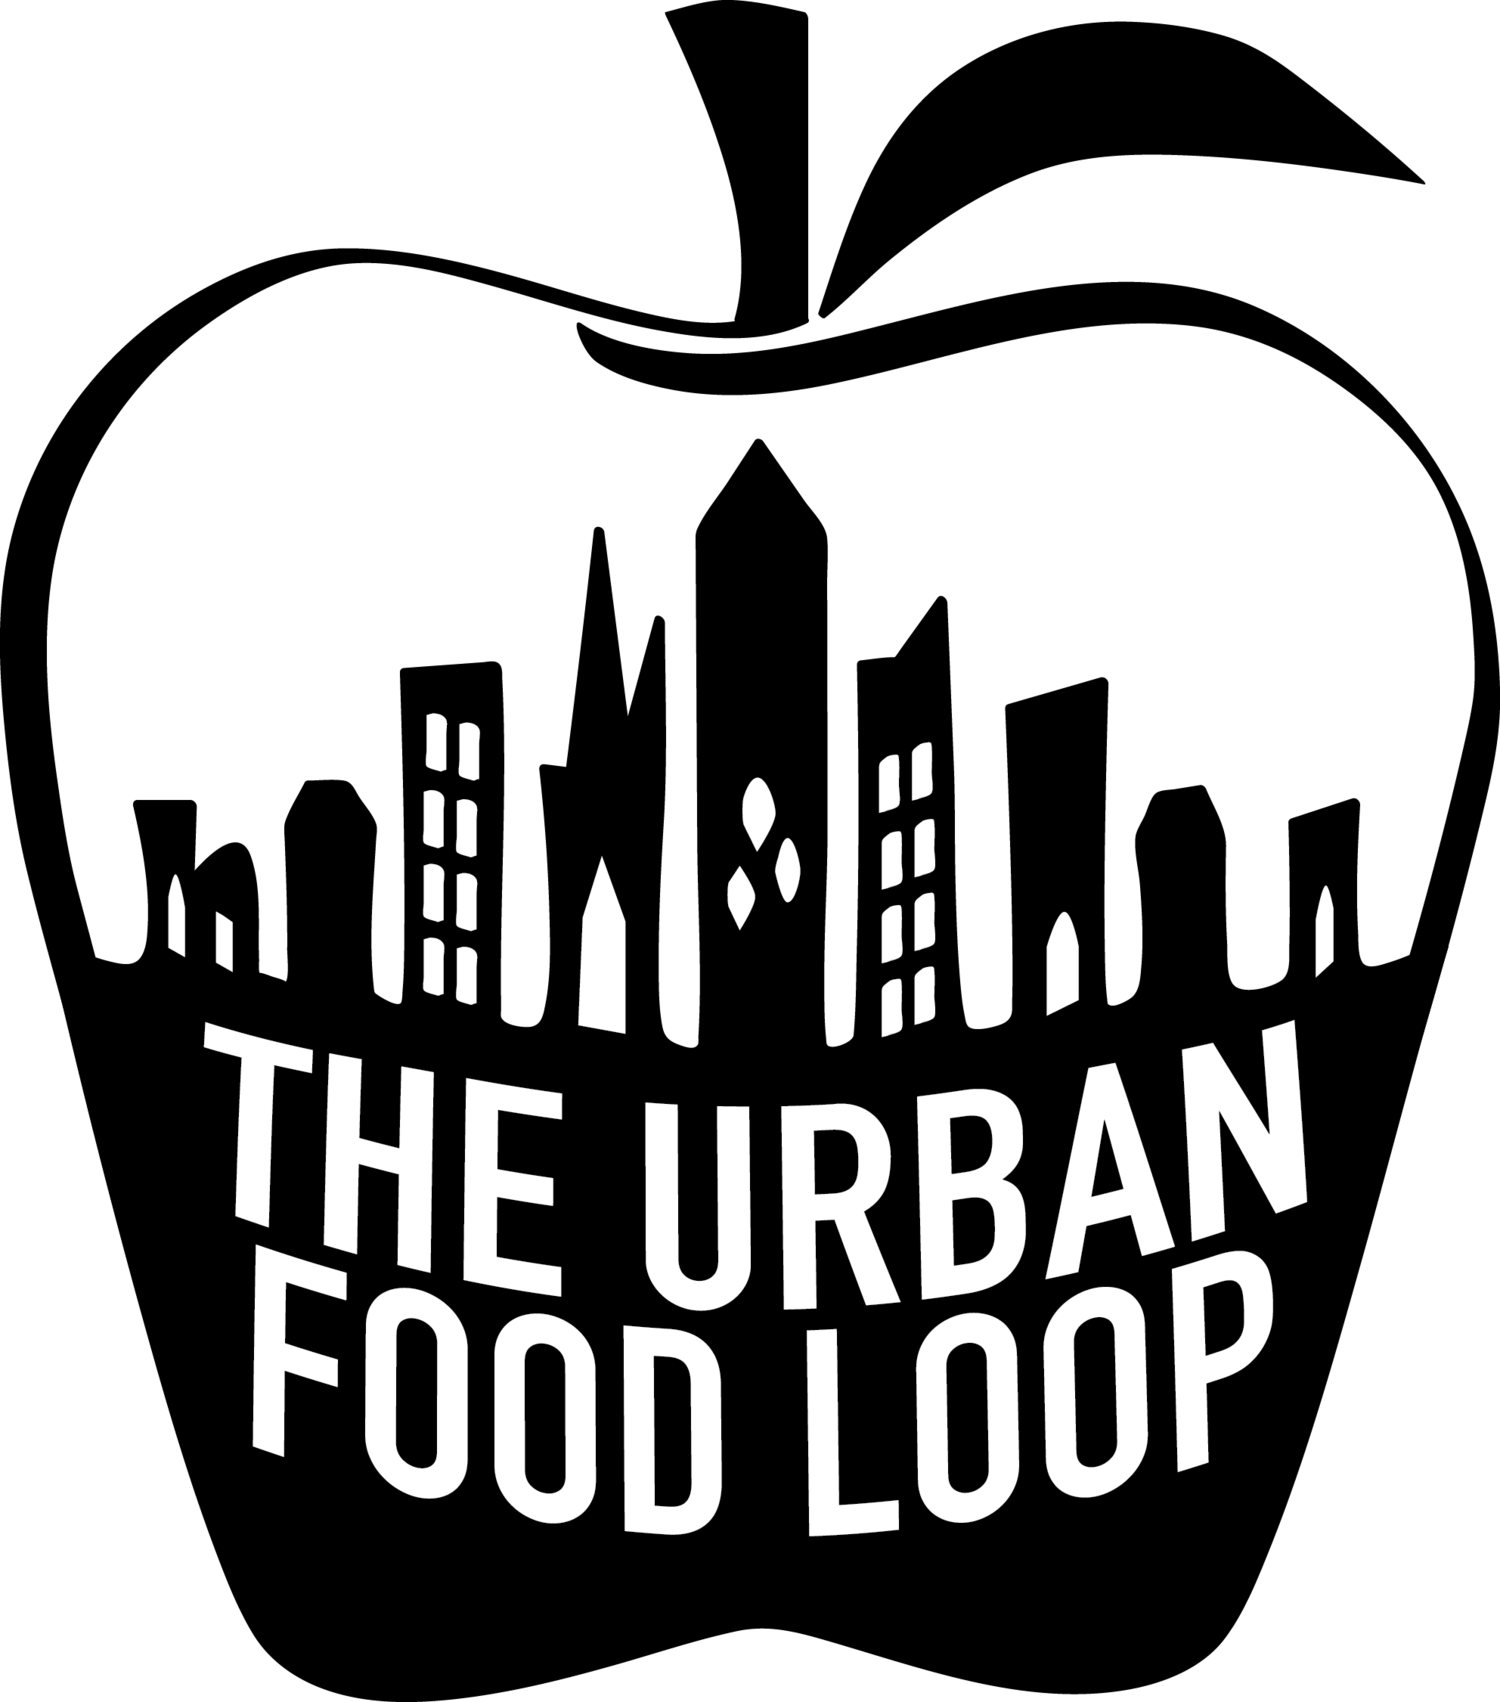 The Urban Food Loop